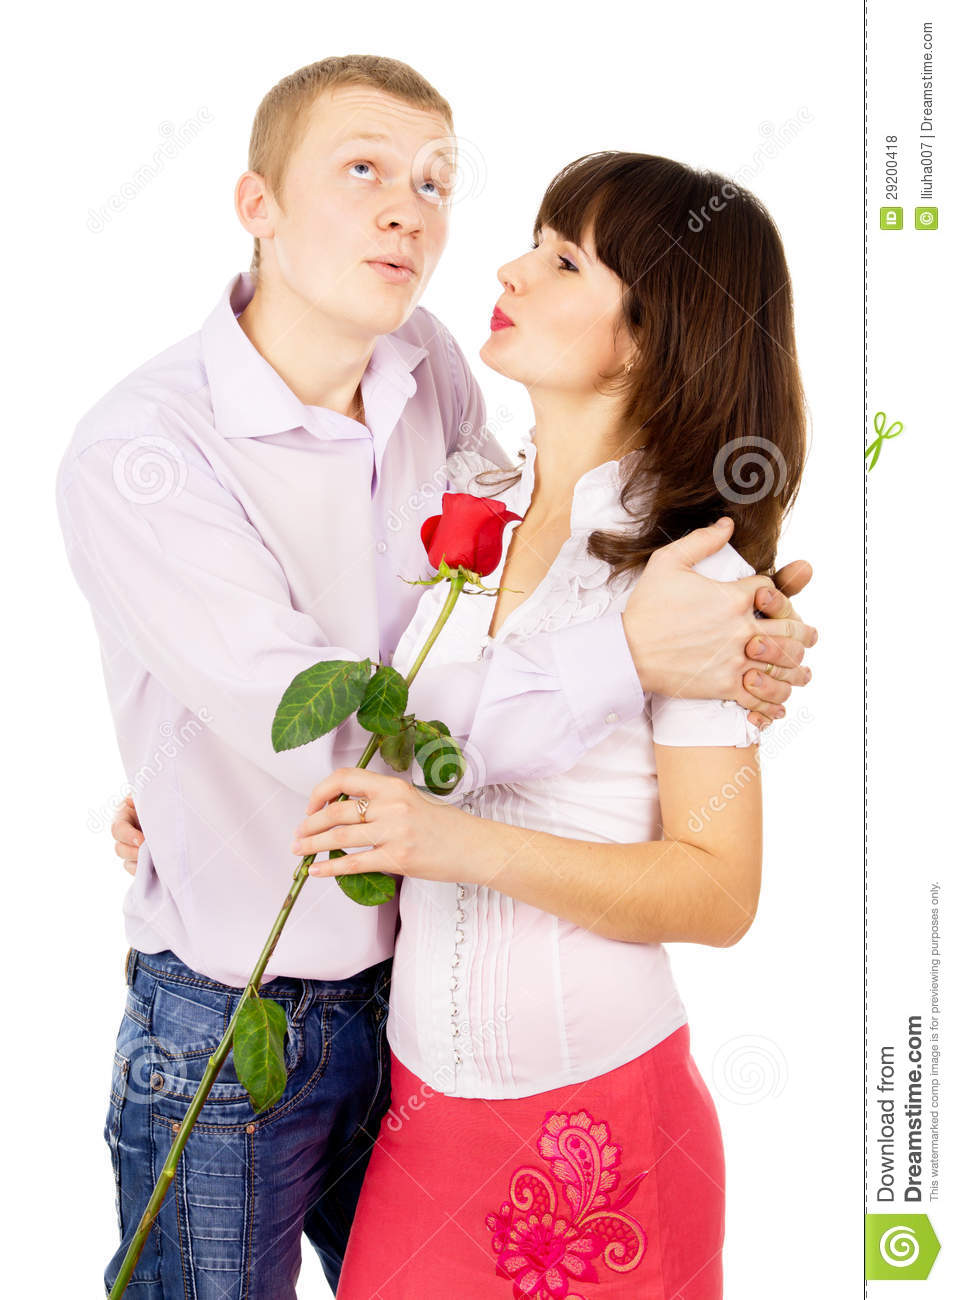 The girl thanked the guy for the rose